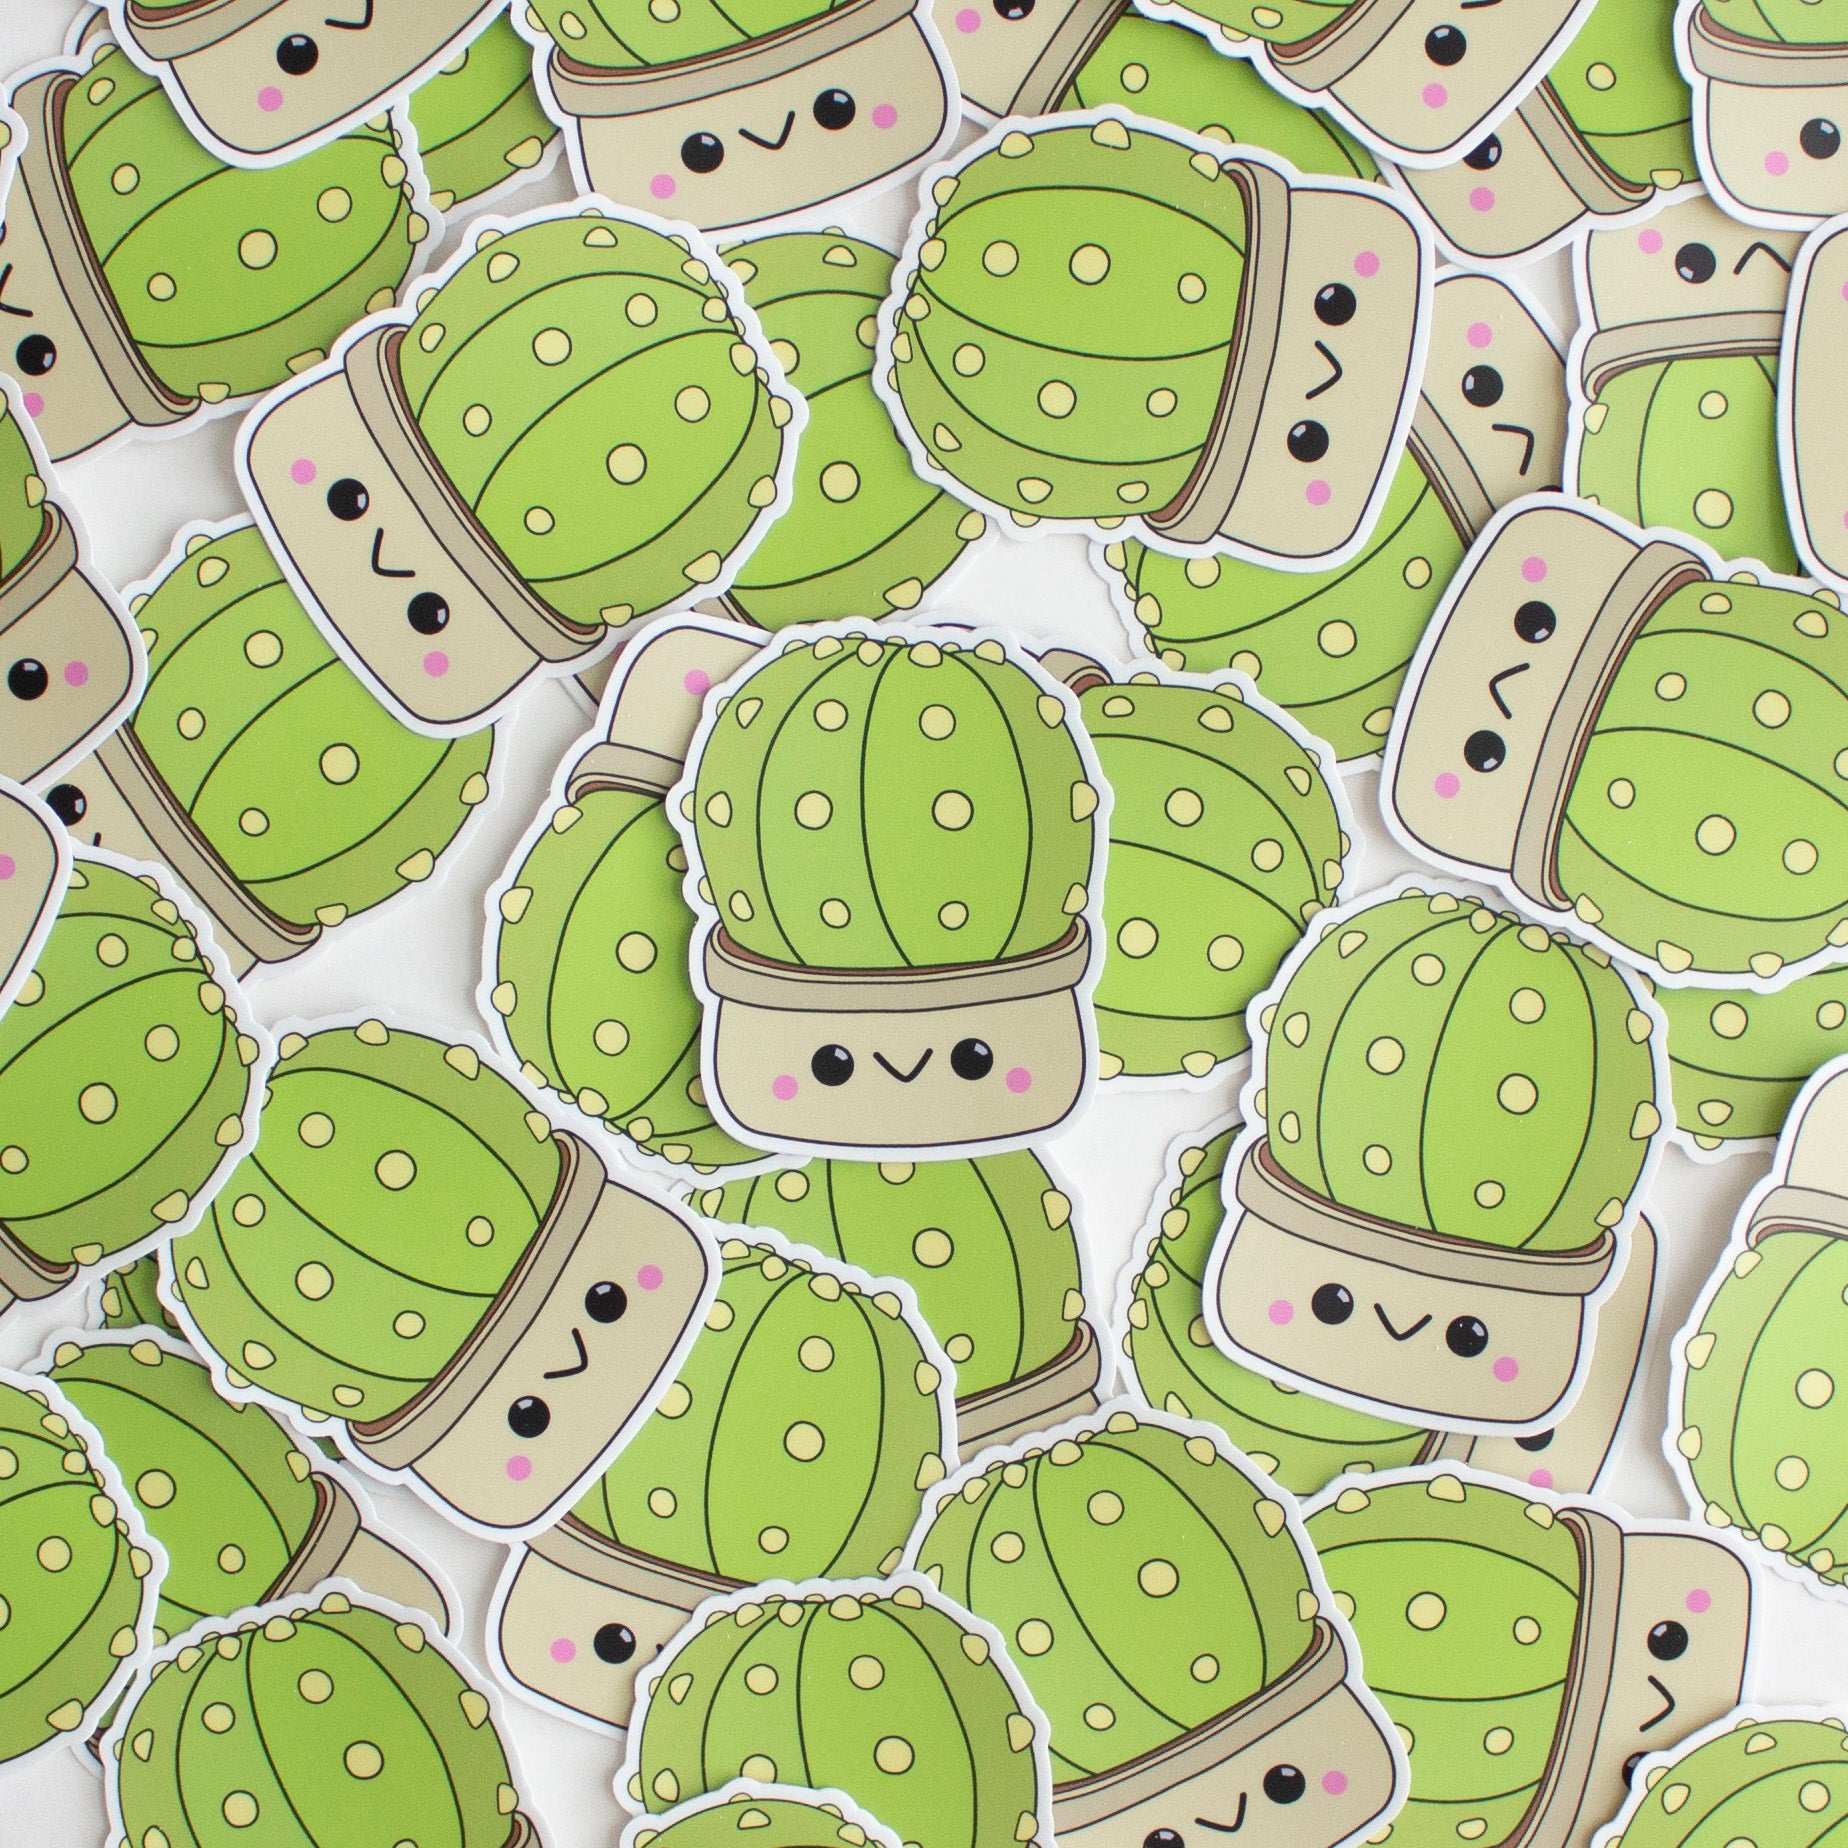 Kawaii Sand Dollar Cactus Sticker